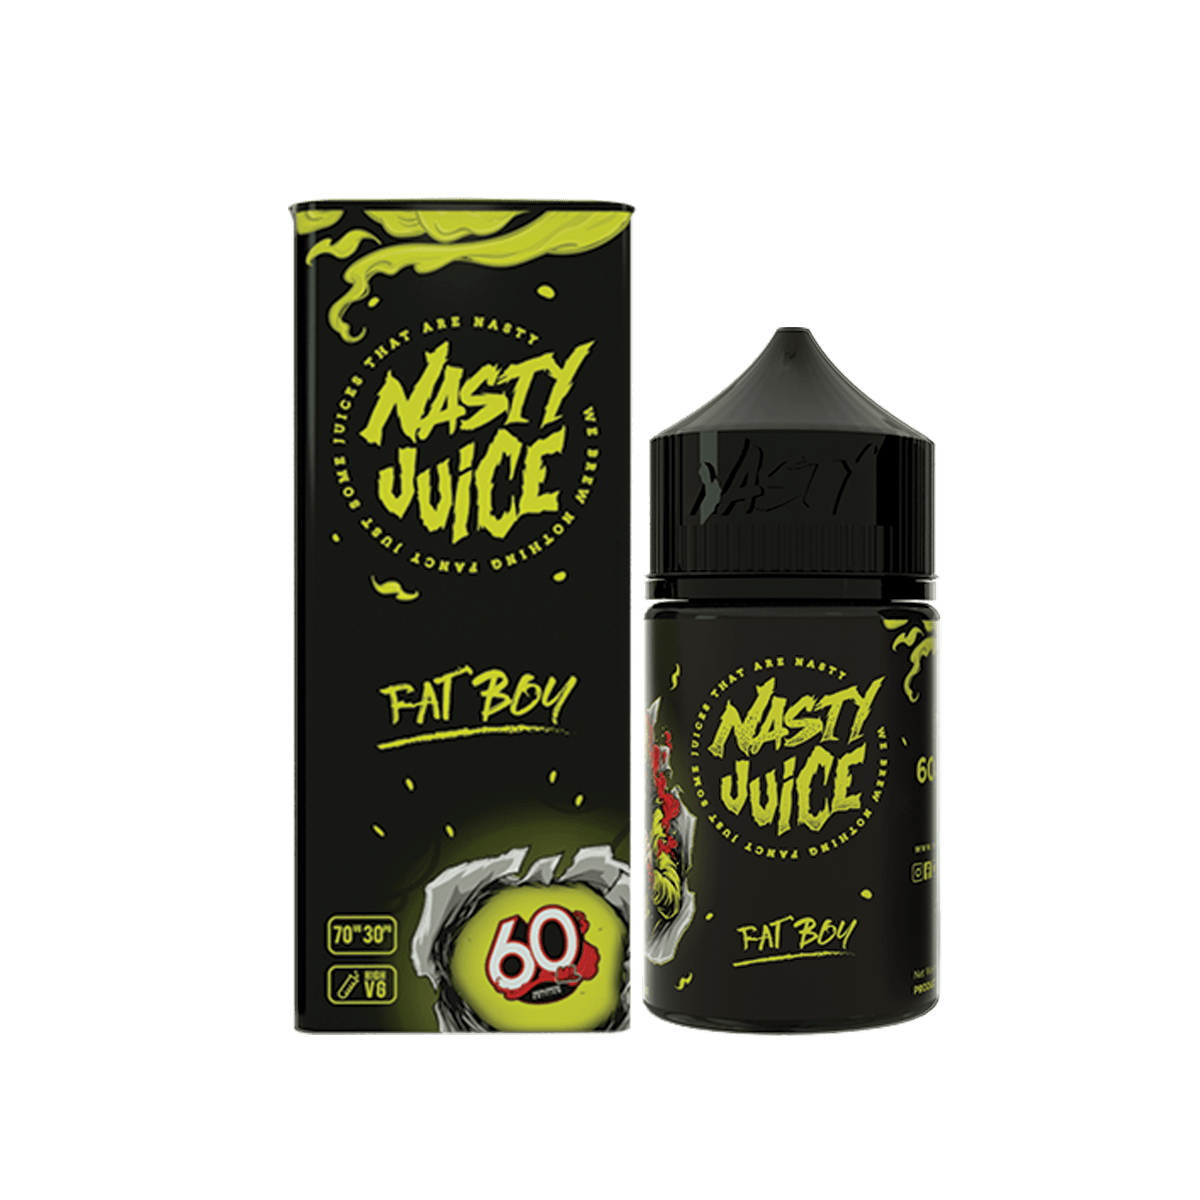 Nasty Juice E-Liquid - Fat Boy